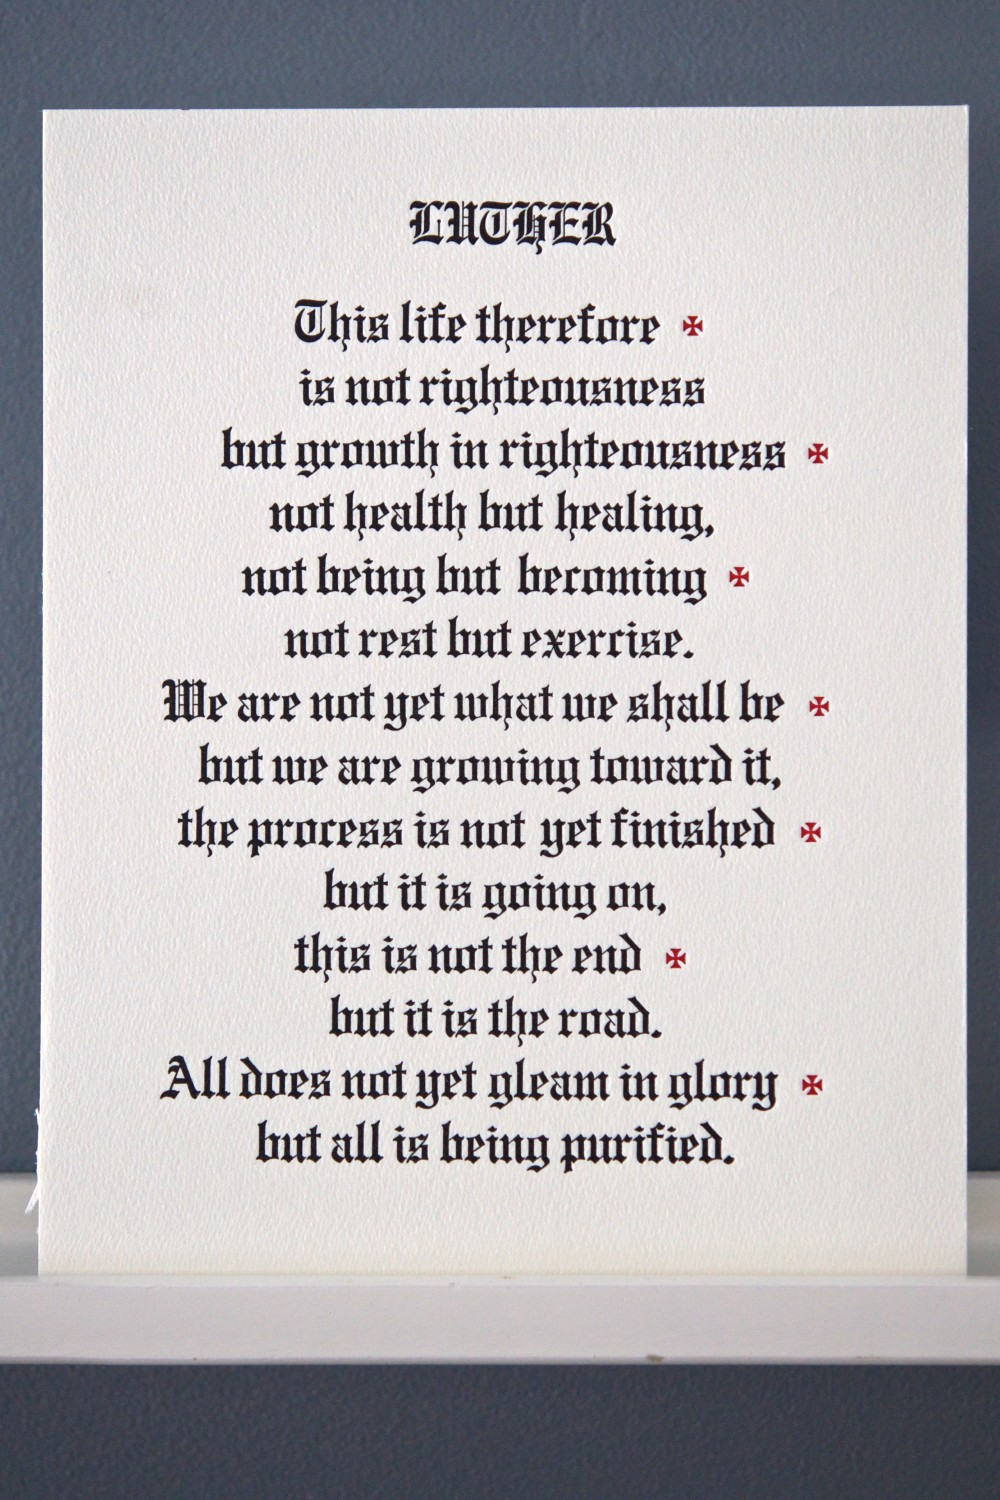 Martin Luther letterpress broadside